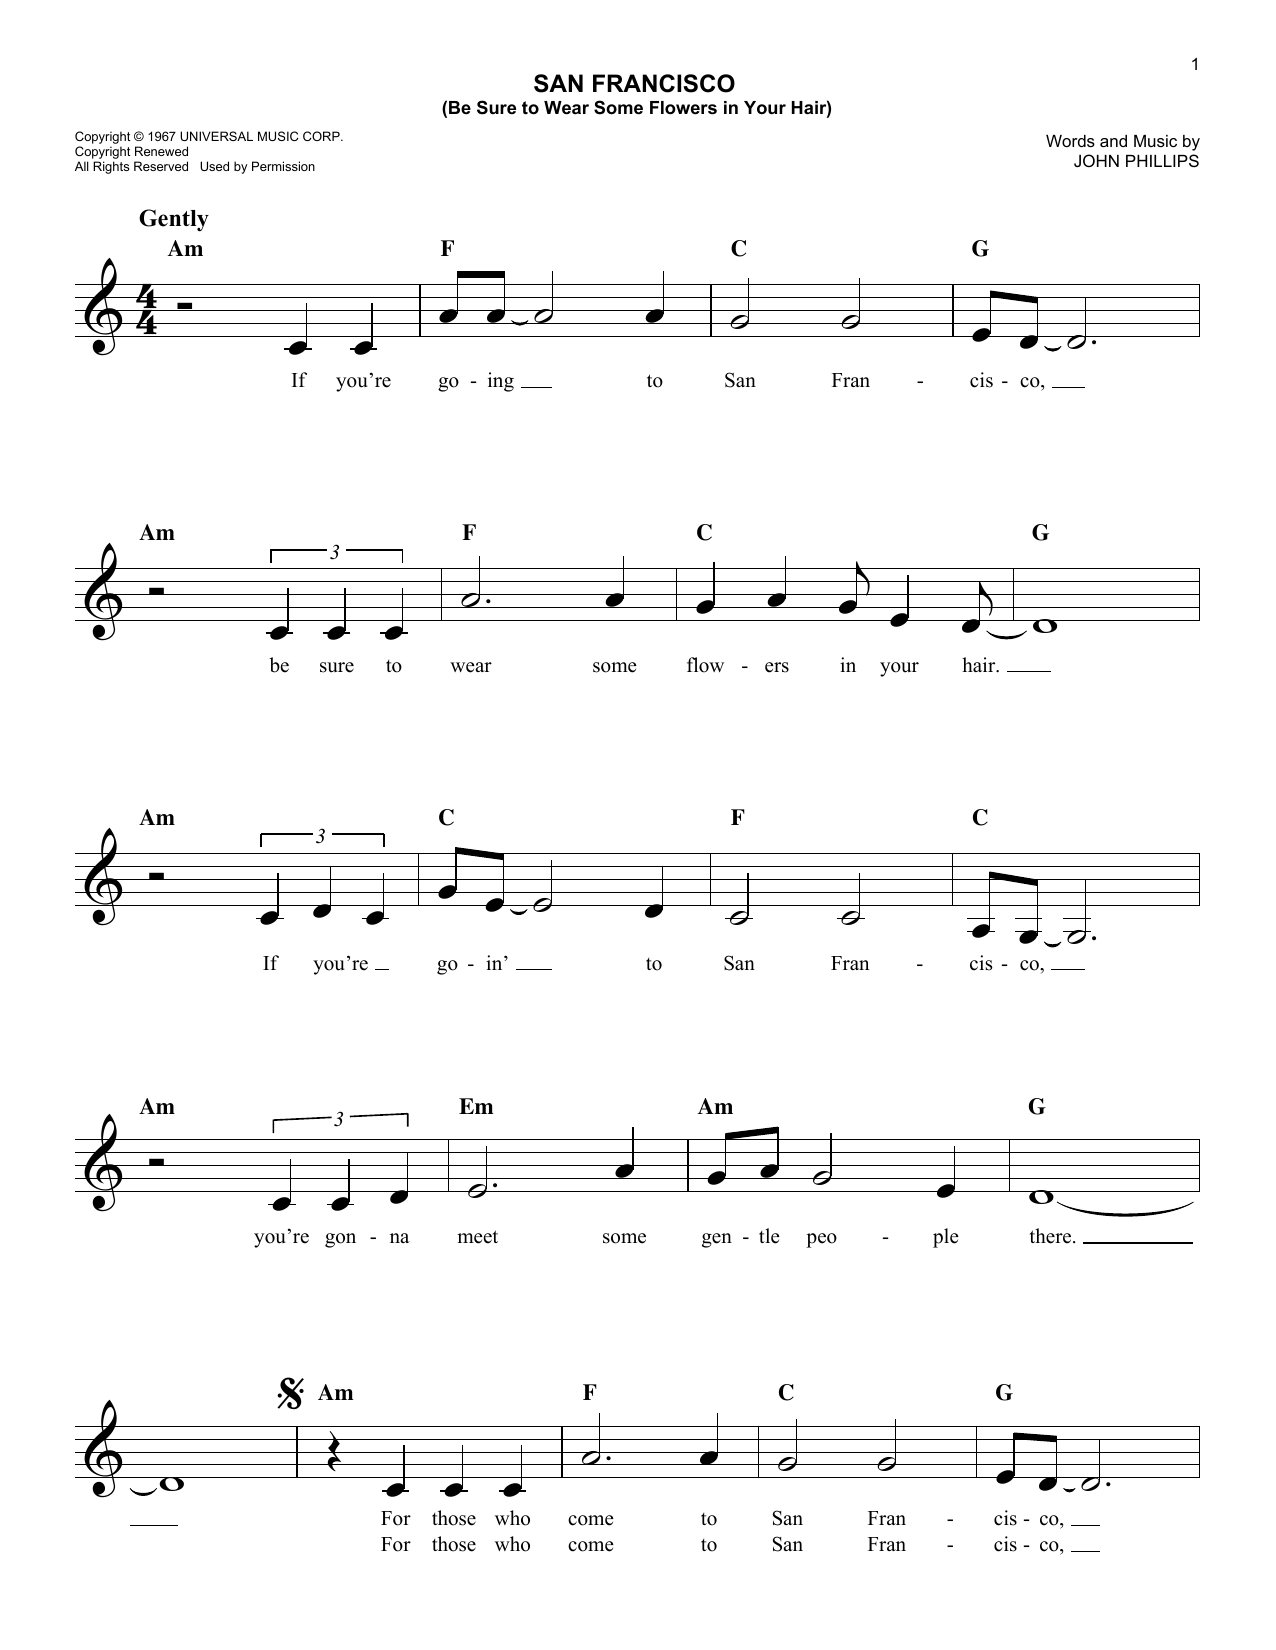 San Francisco (Be Sure To Wear Some Flowers In Your Hair) Sheet Music